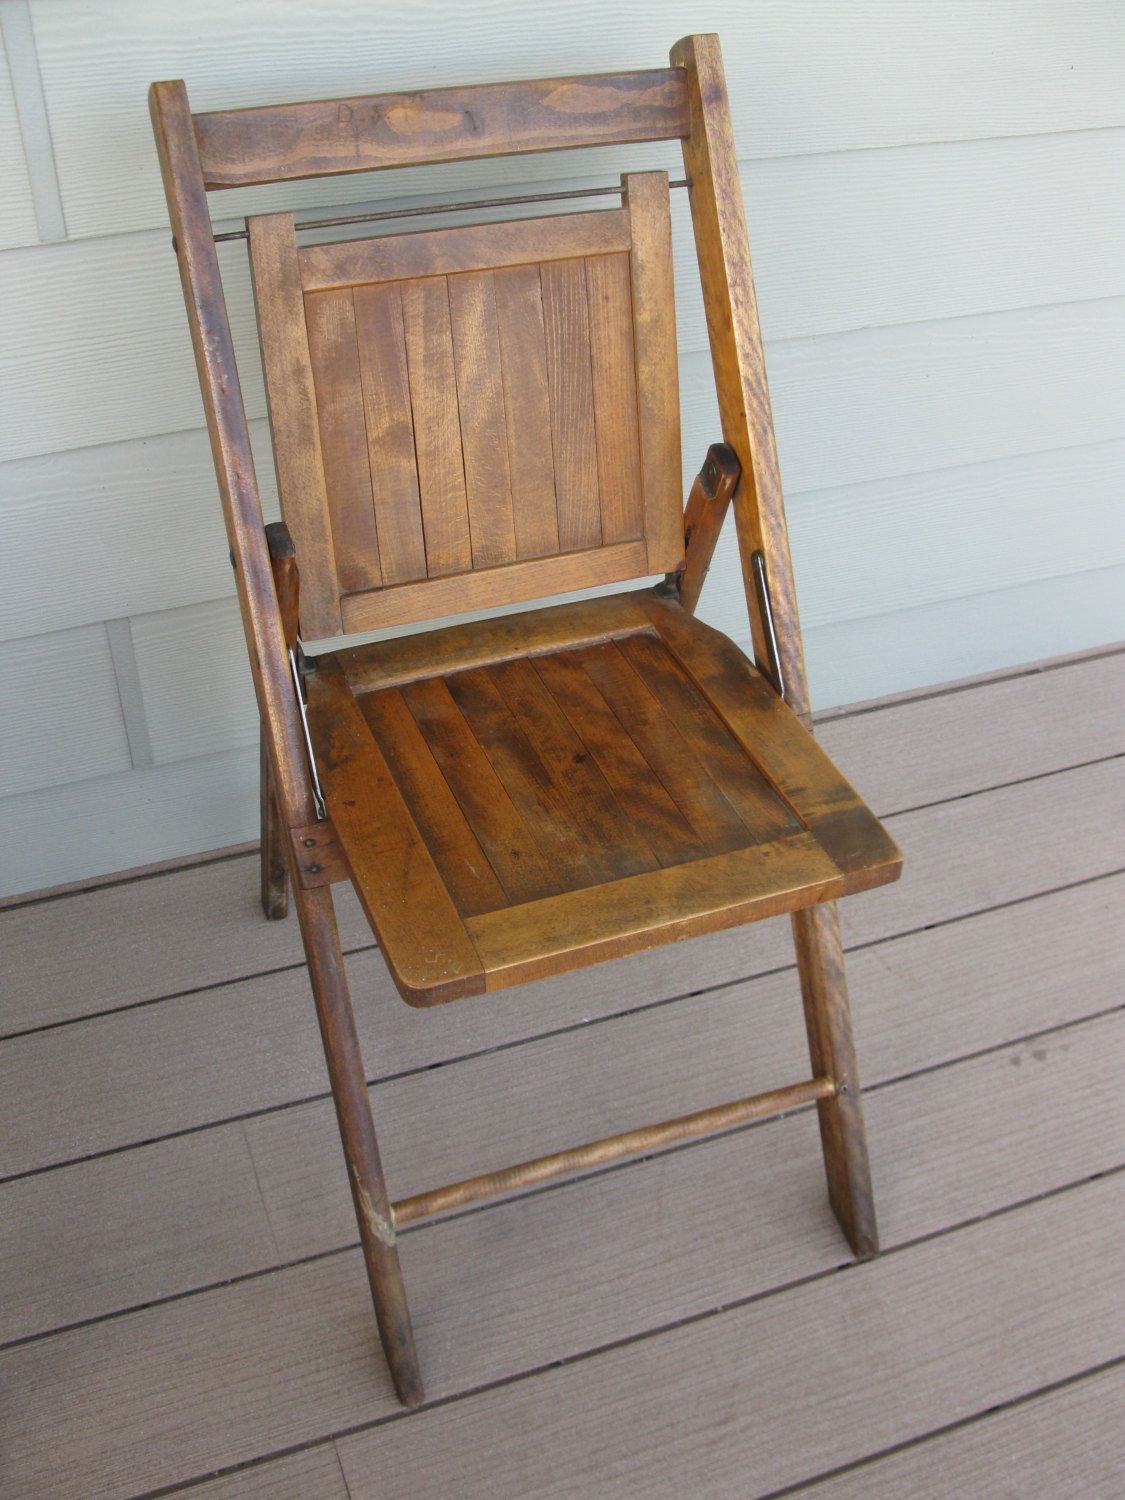 Wood Folding Chair- Wood Slat Chair- Sturdy- School Chair- Church- Antique - Wood Folding Chair- Wood Slat Chair- Sturdy- School Chair- Church